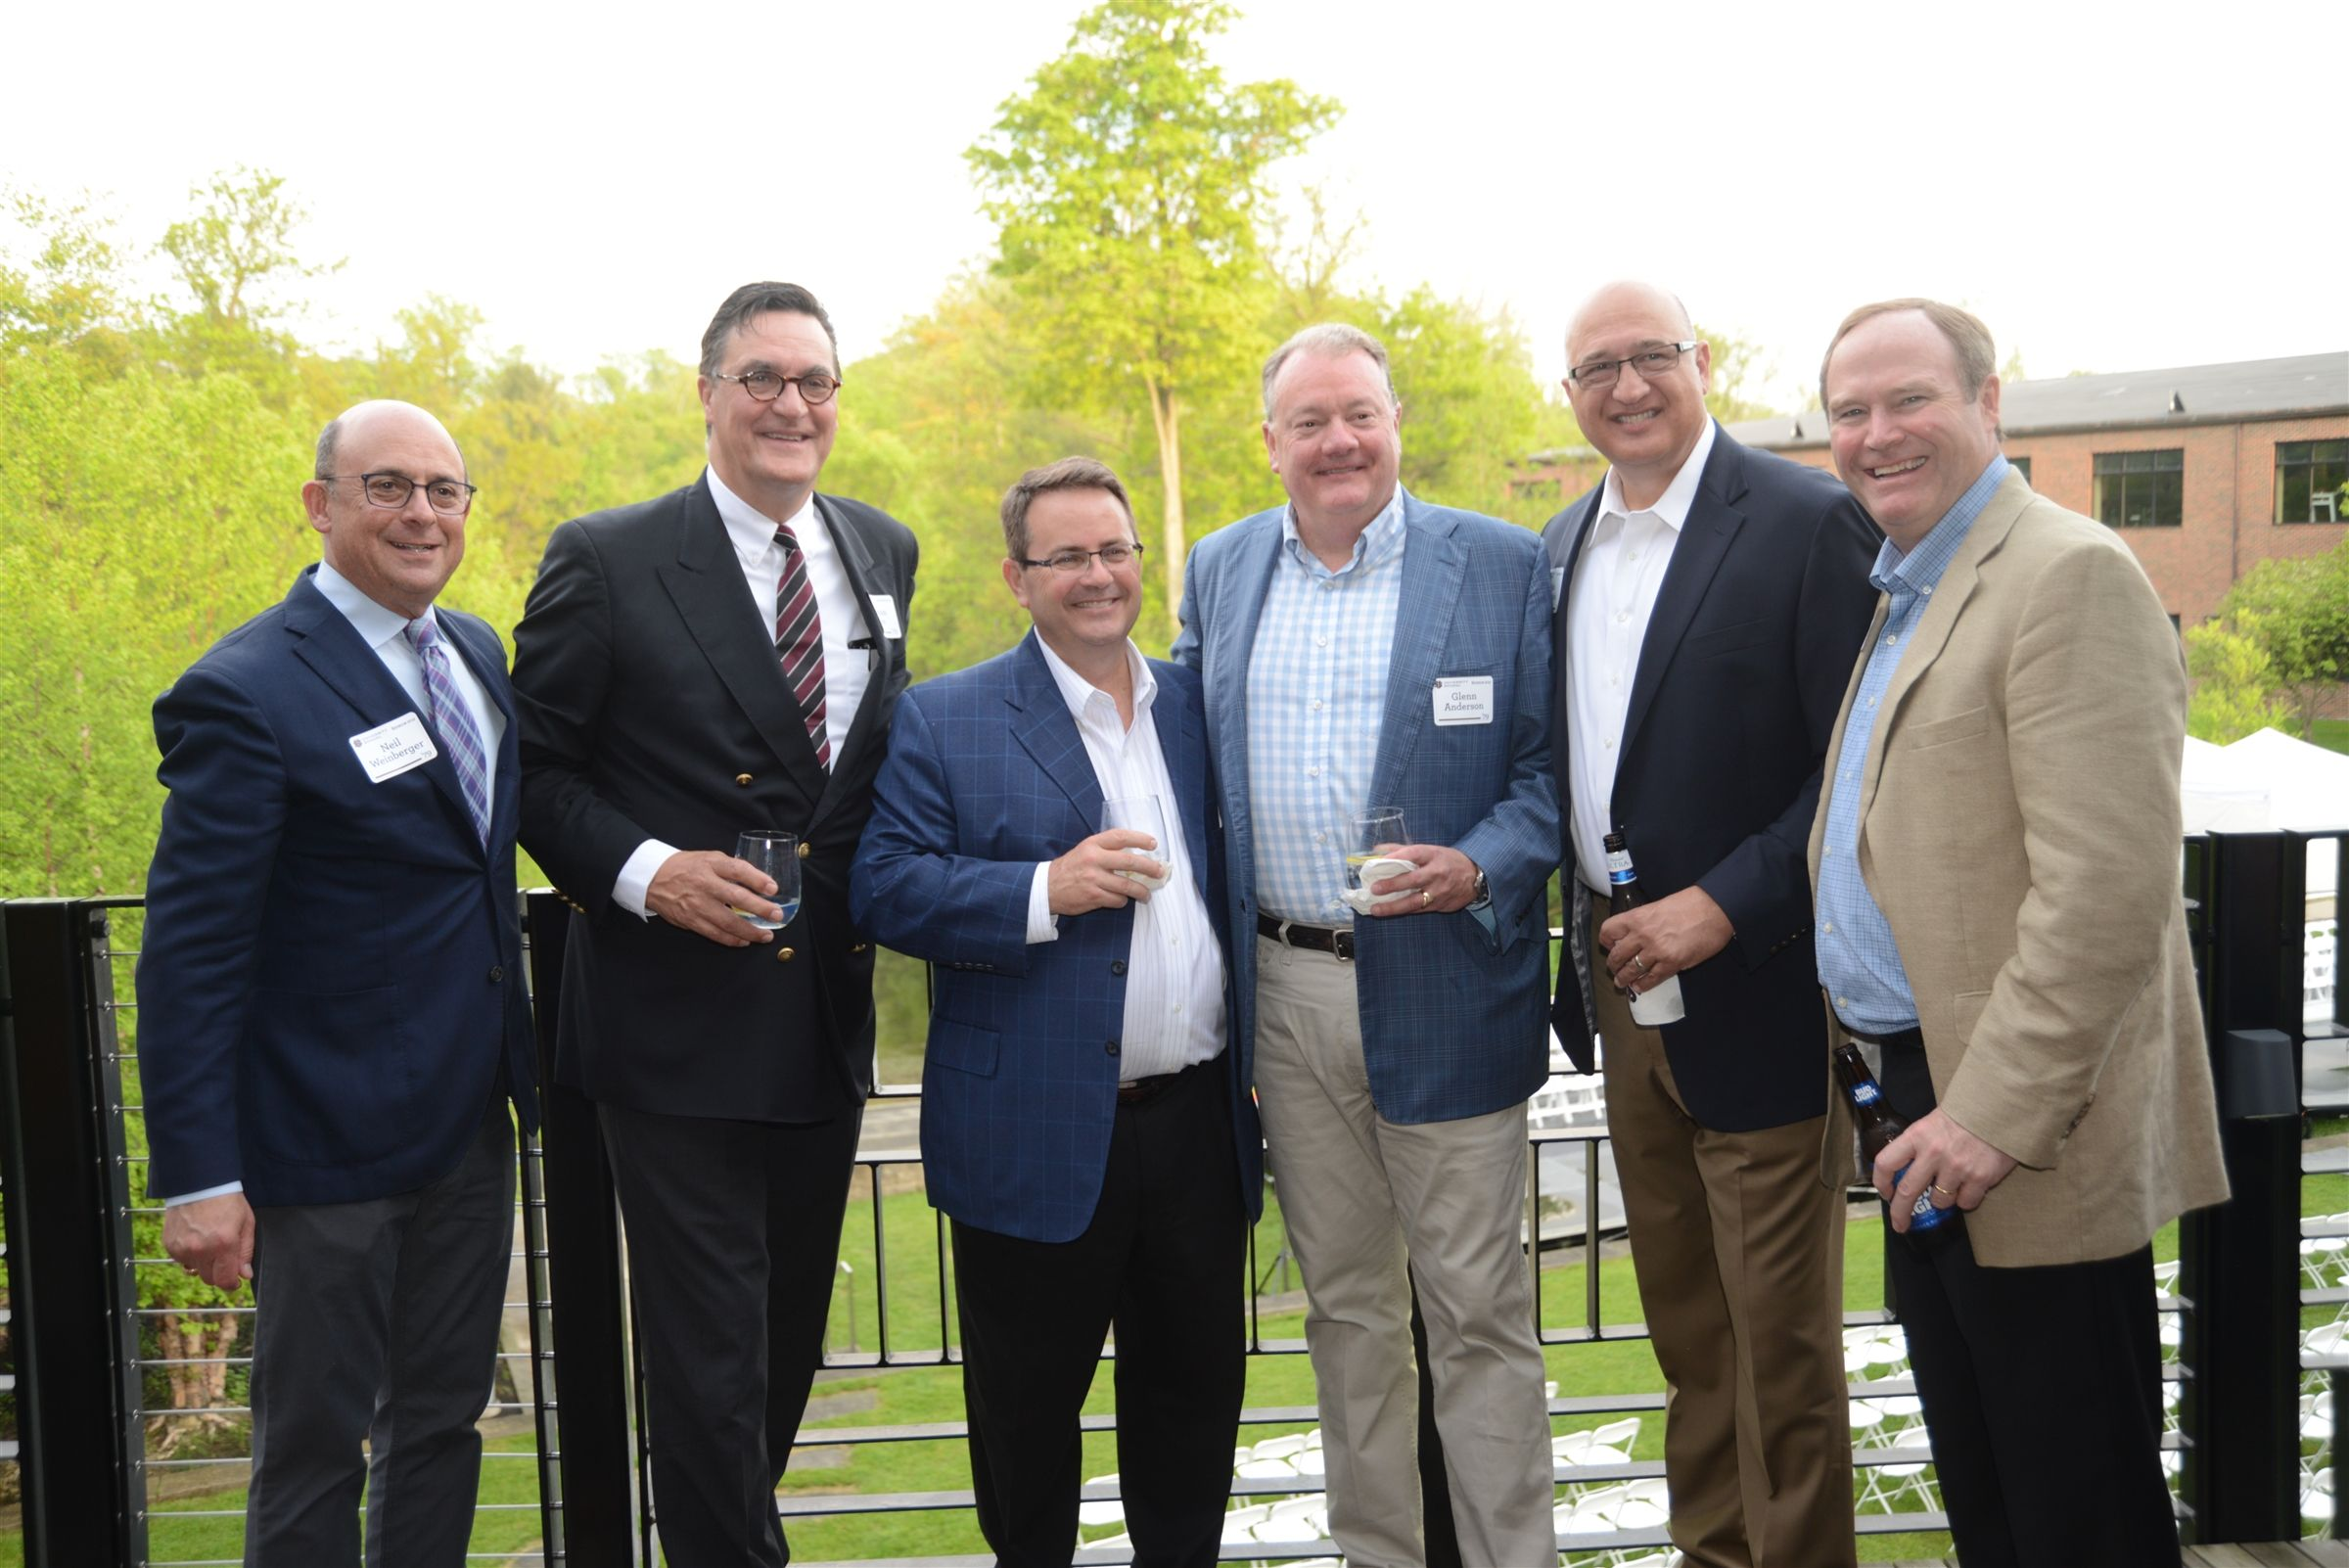 The perfect night to be on the balcony.  Members from the Class of '79 -- Neil Weinberger, Stephan Krebs, Dan McLaughlin, Glenn Anderson, Rob Patrick, and Mac Biggar are all smiles at the Hail University Reception.